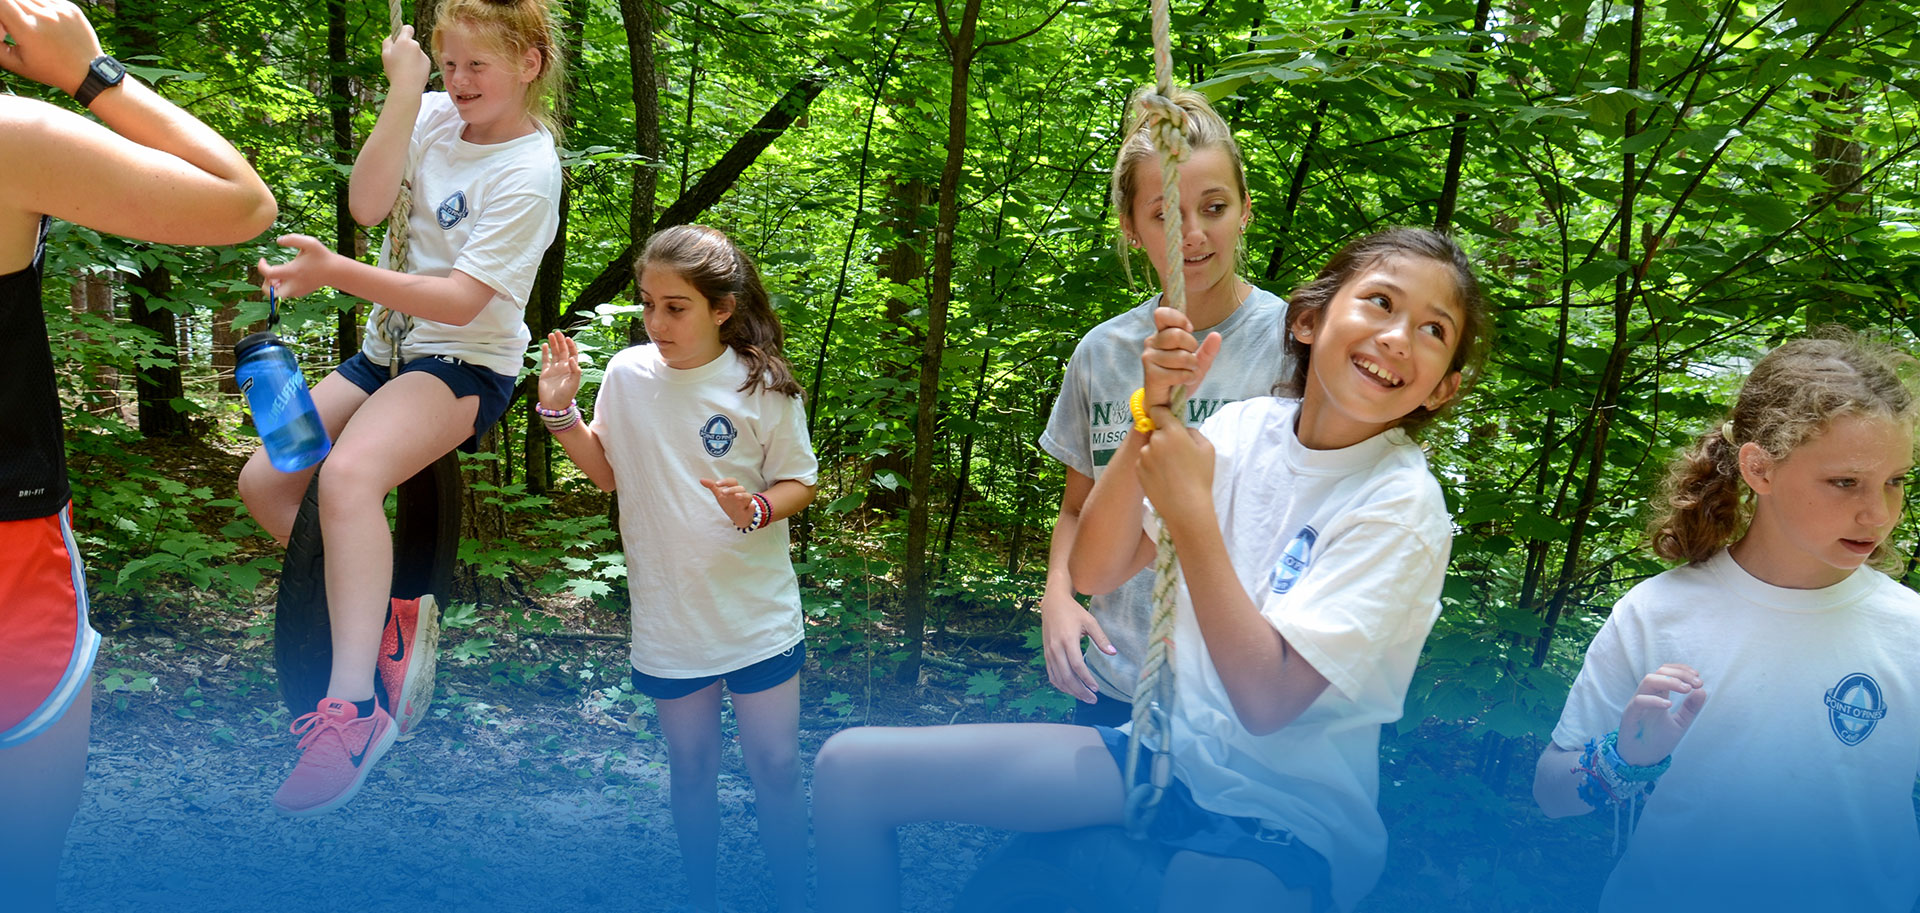 Campers on adventure course at overnight camp